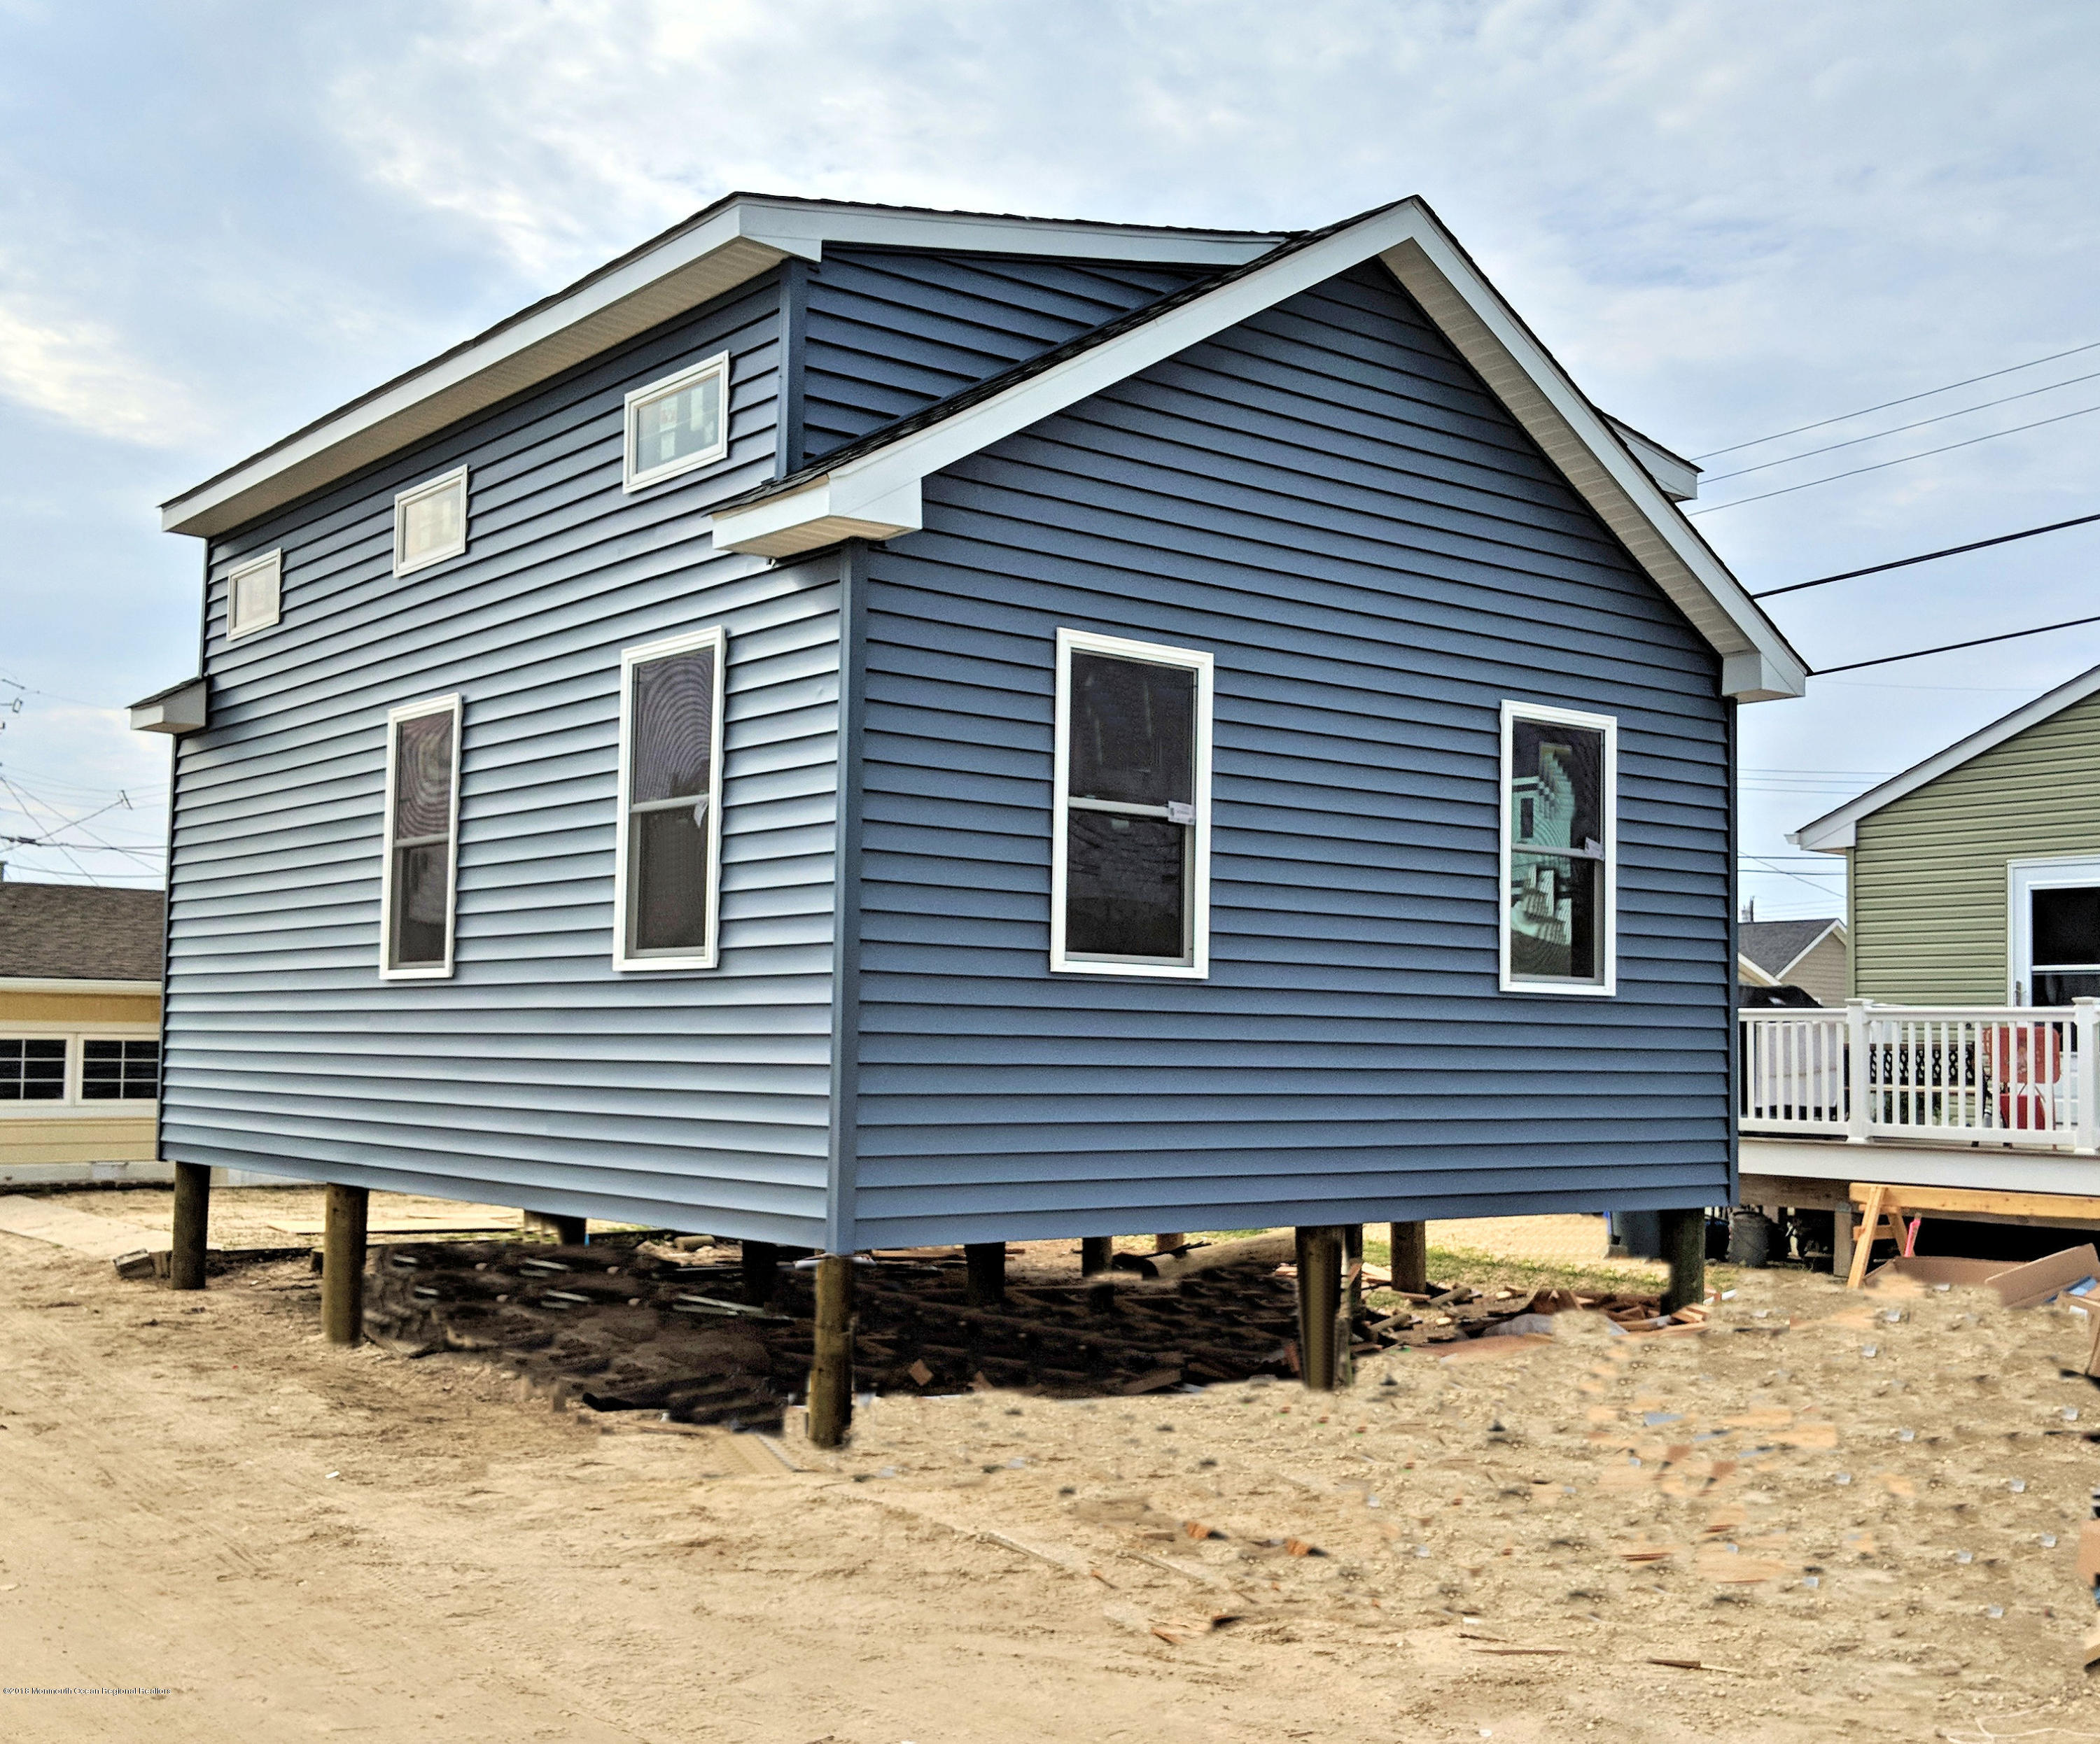 37 E Pelican Way - Lavallette